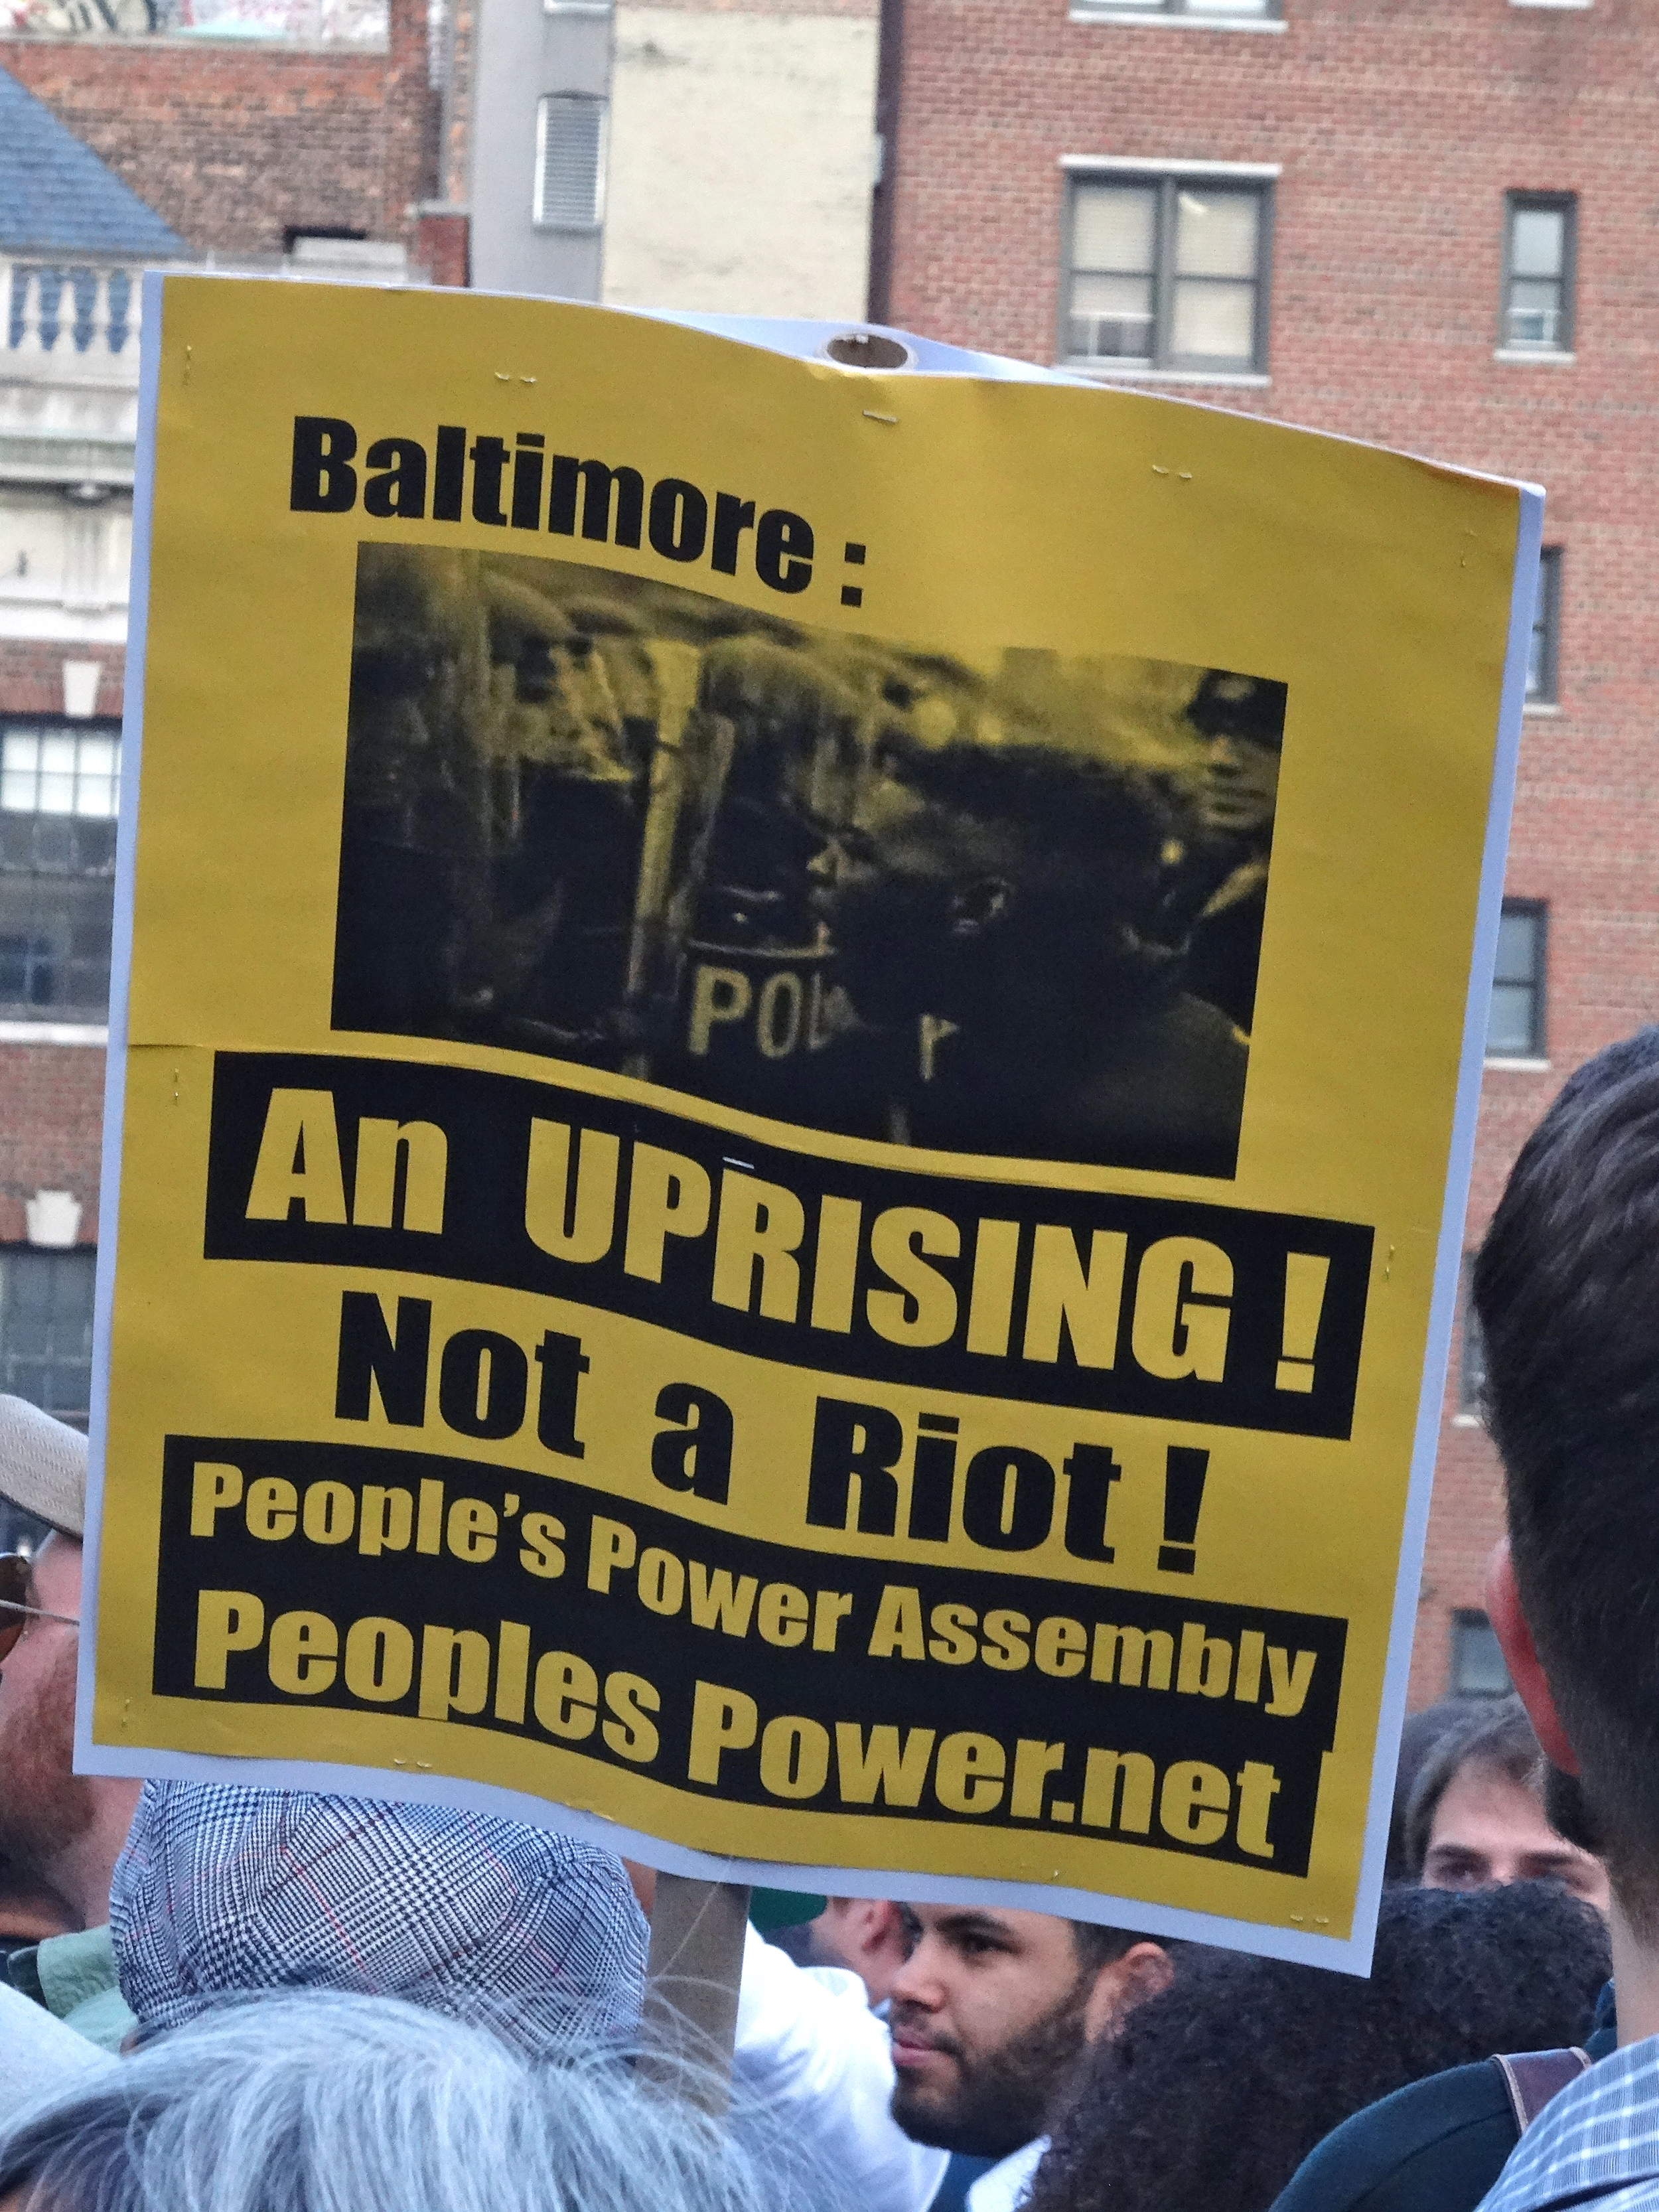 Baltimore: An uprising not a riot